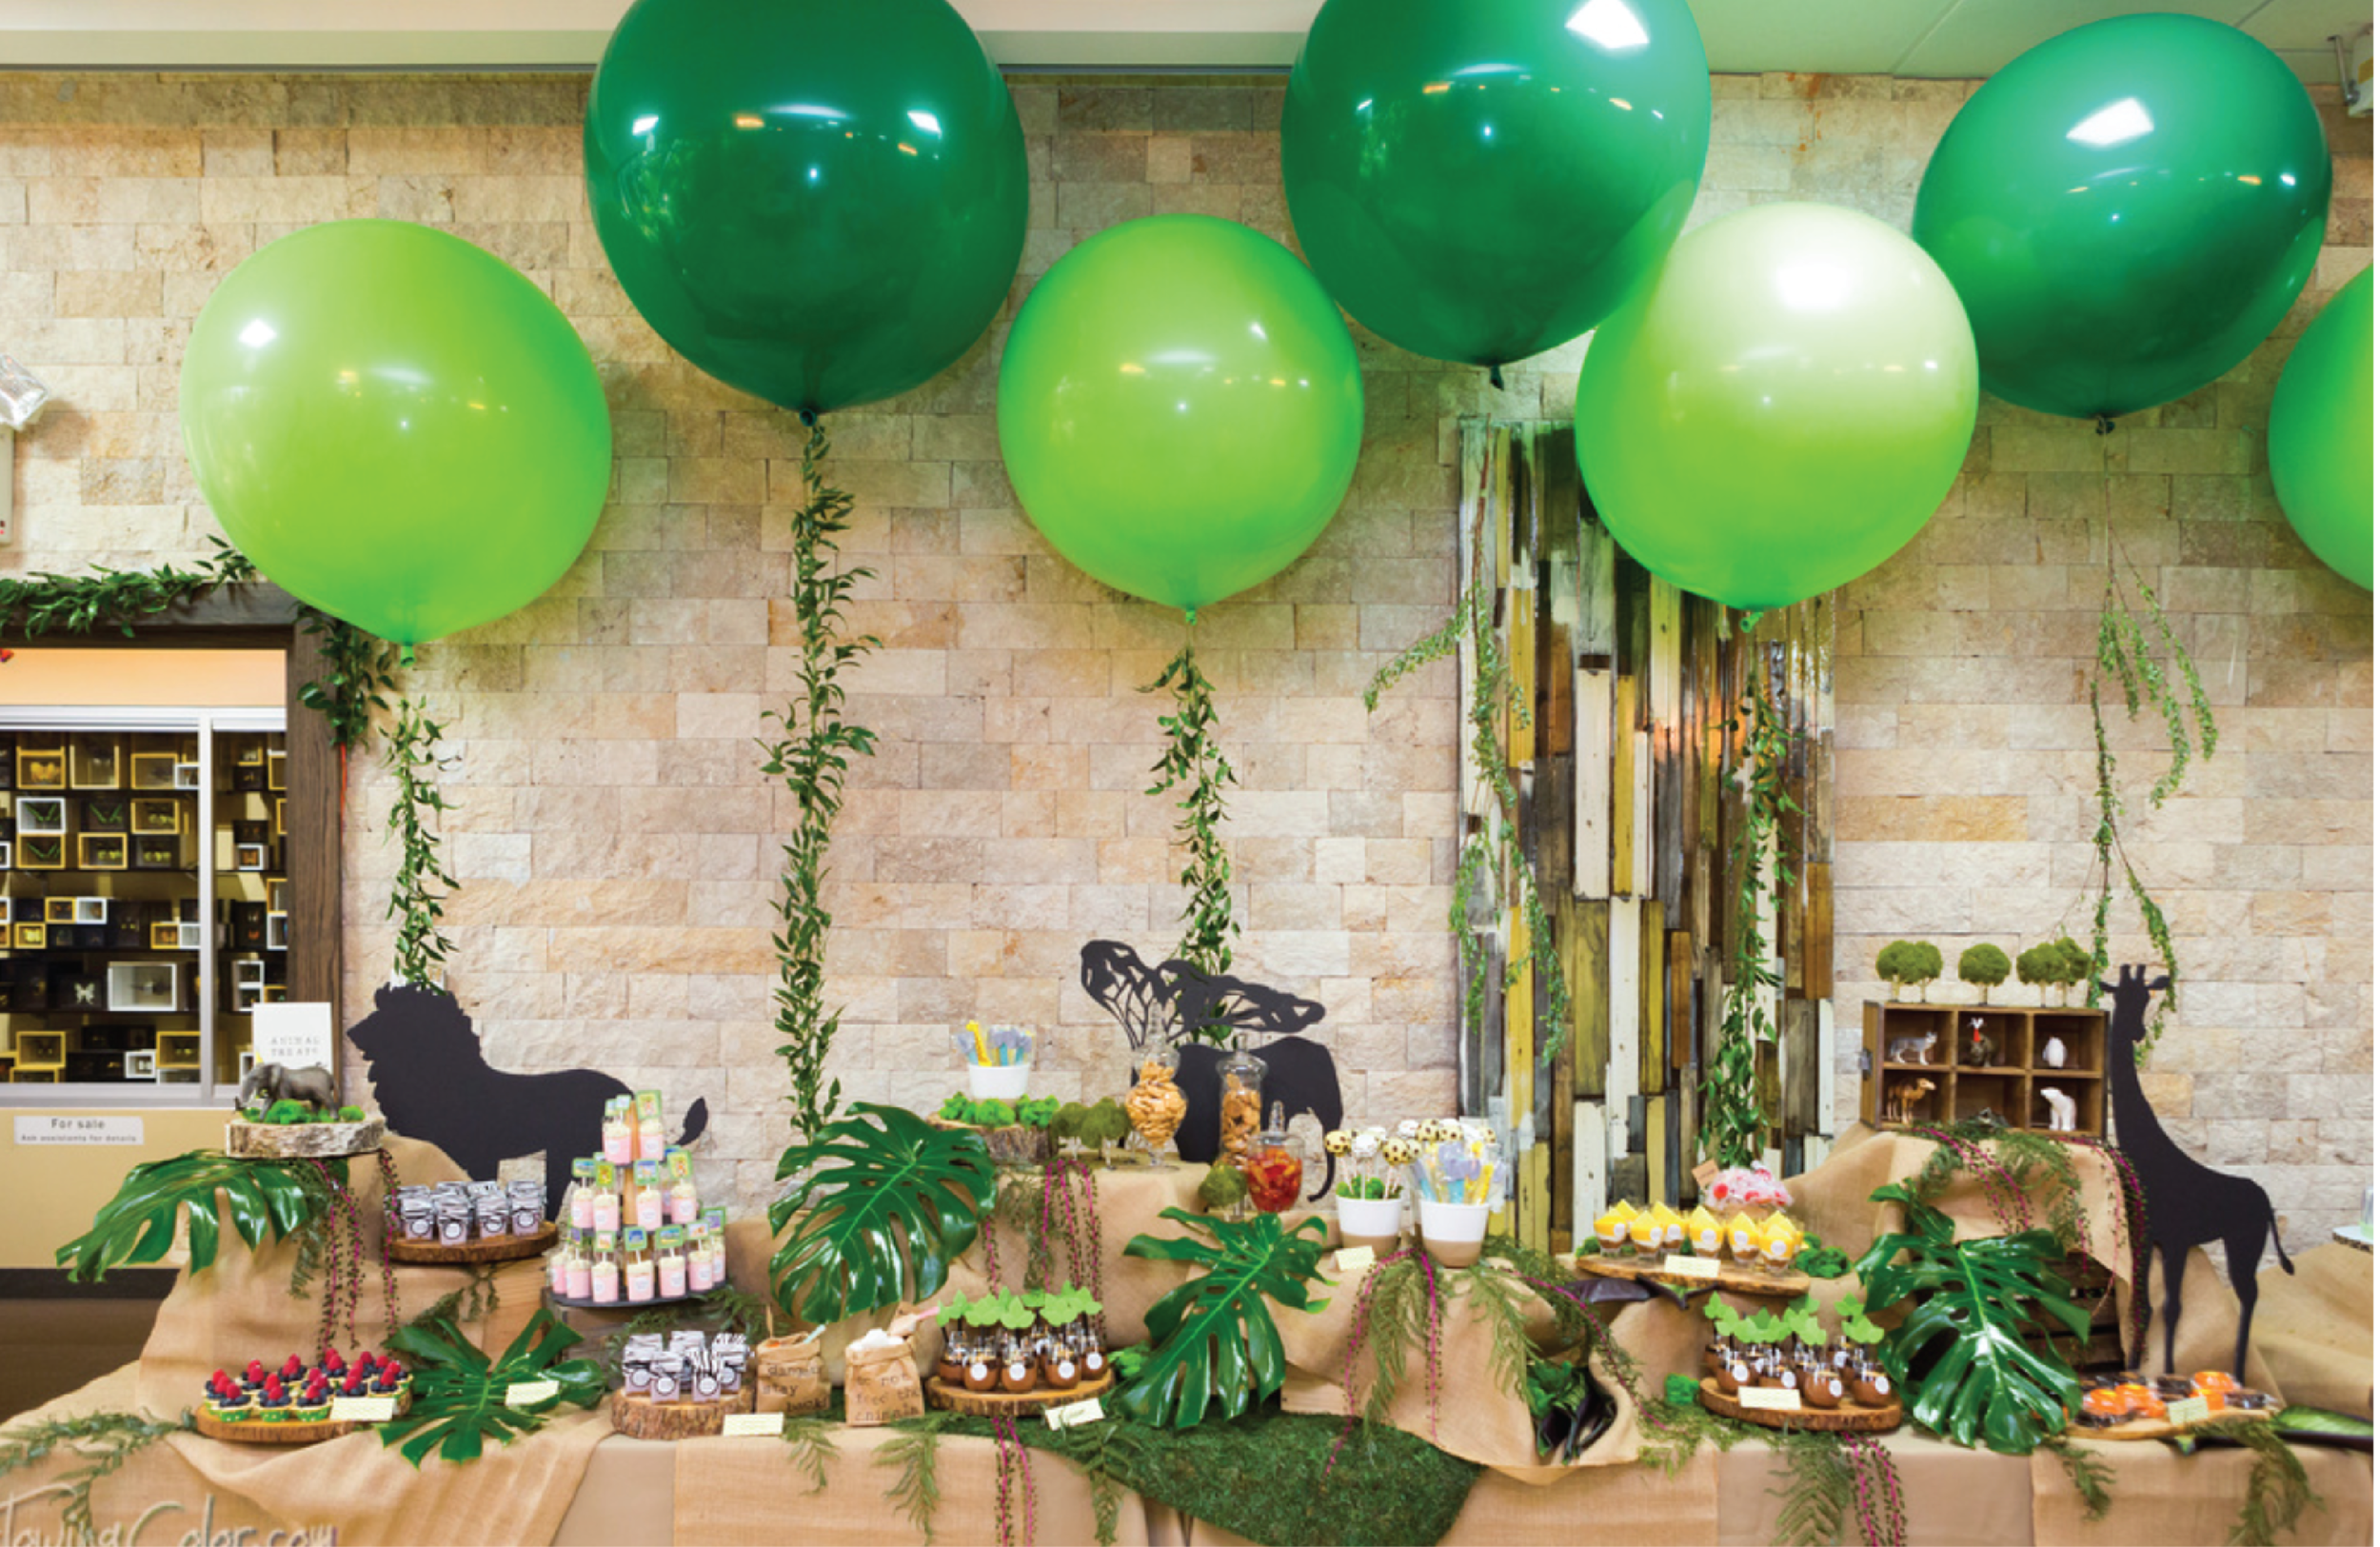 Here is the full shot of the Dessert Table. As you can see we used a lot of real plants to make it come to life. Even the vines on the balloons are made with fresh leaves.